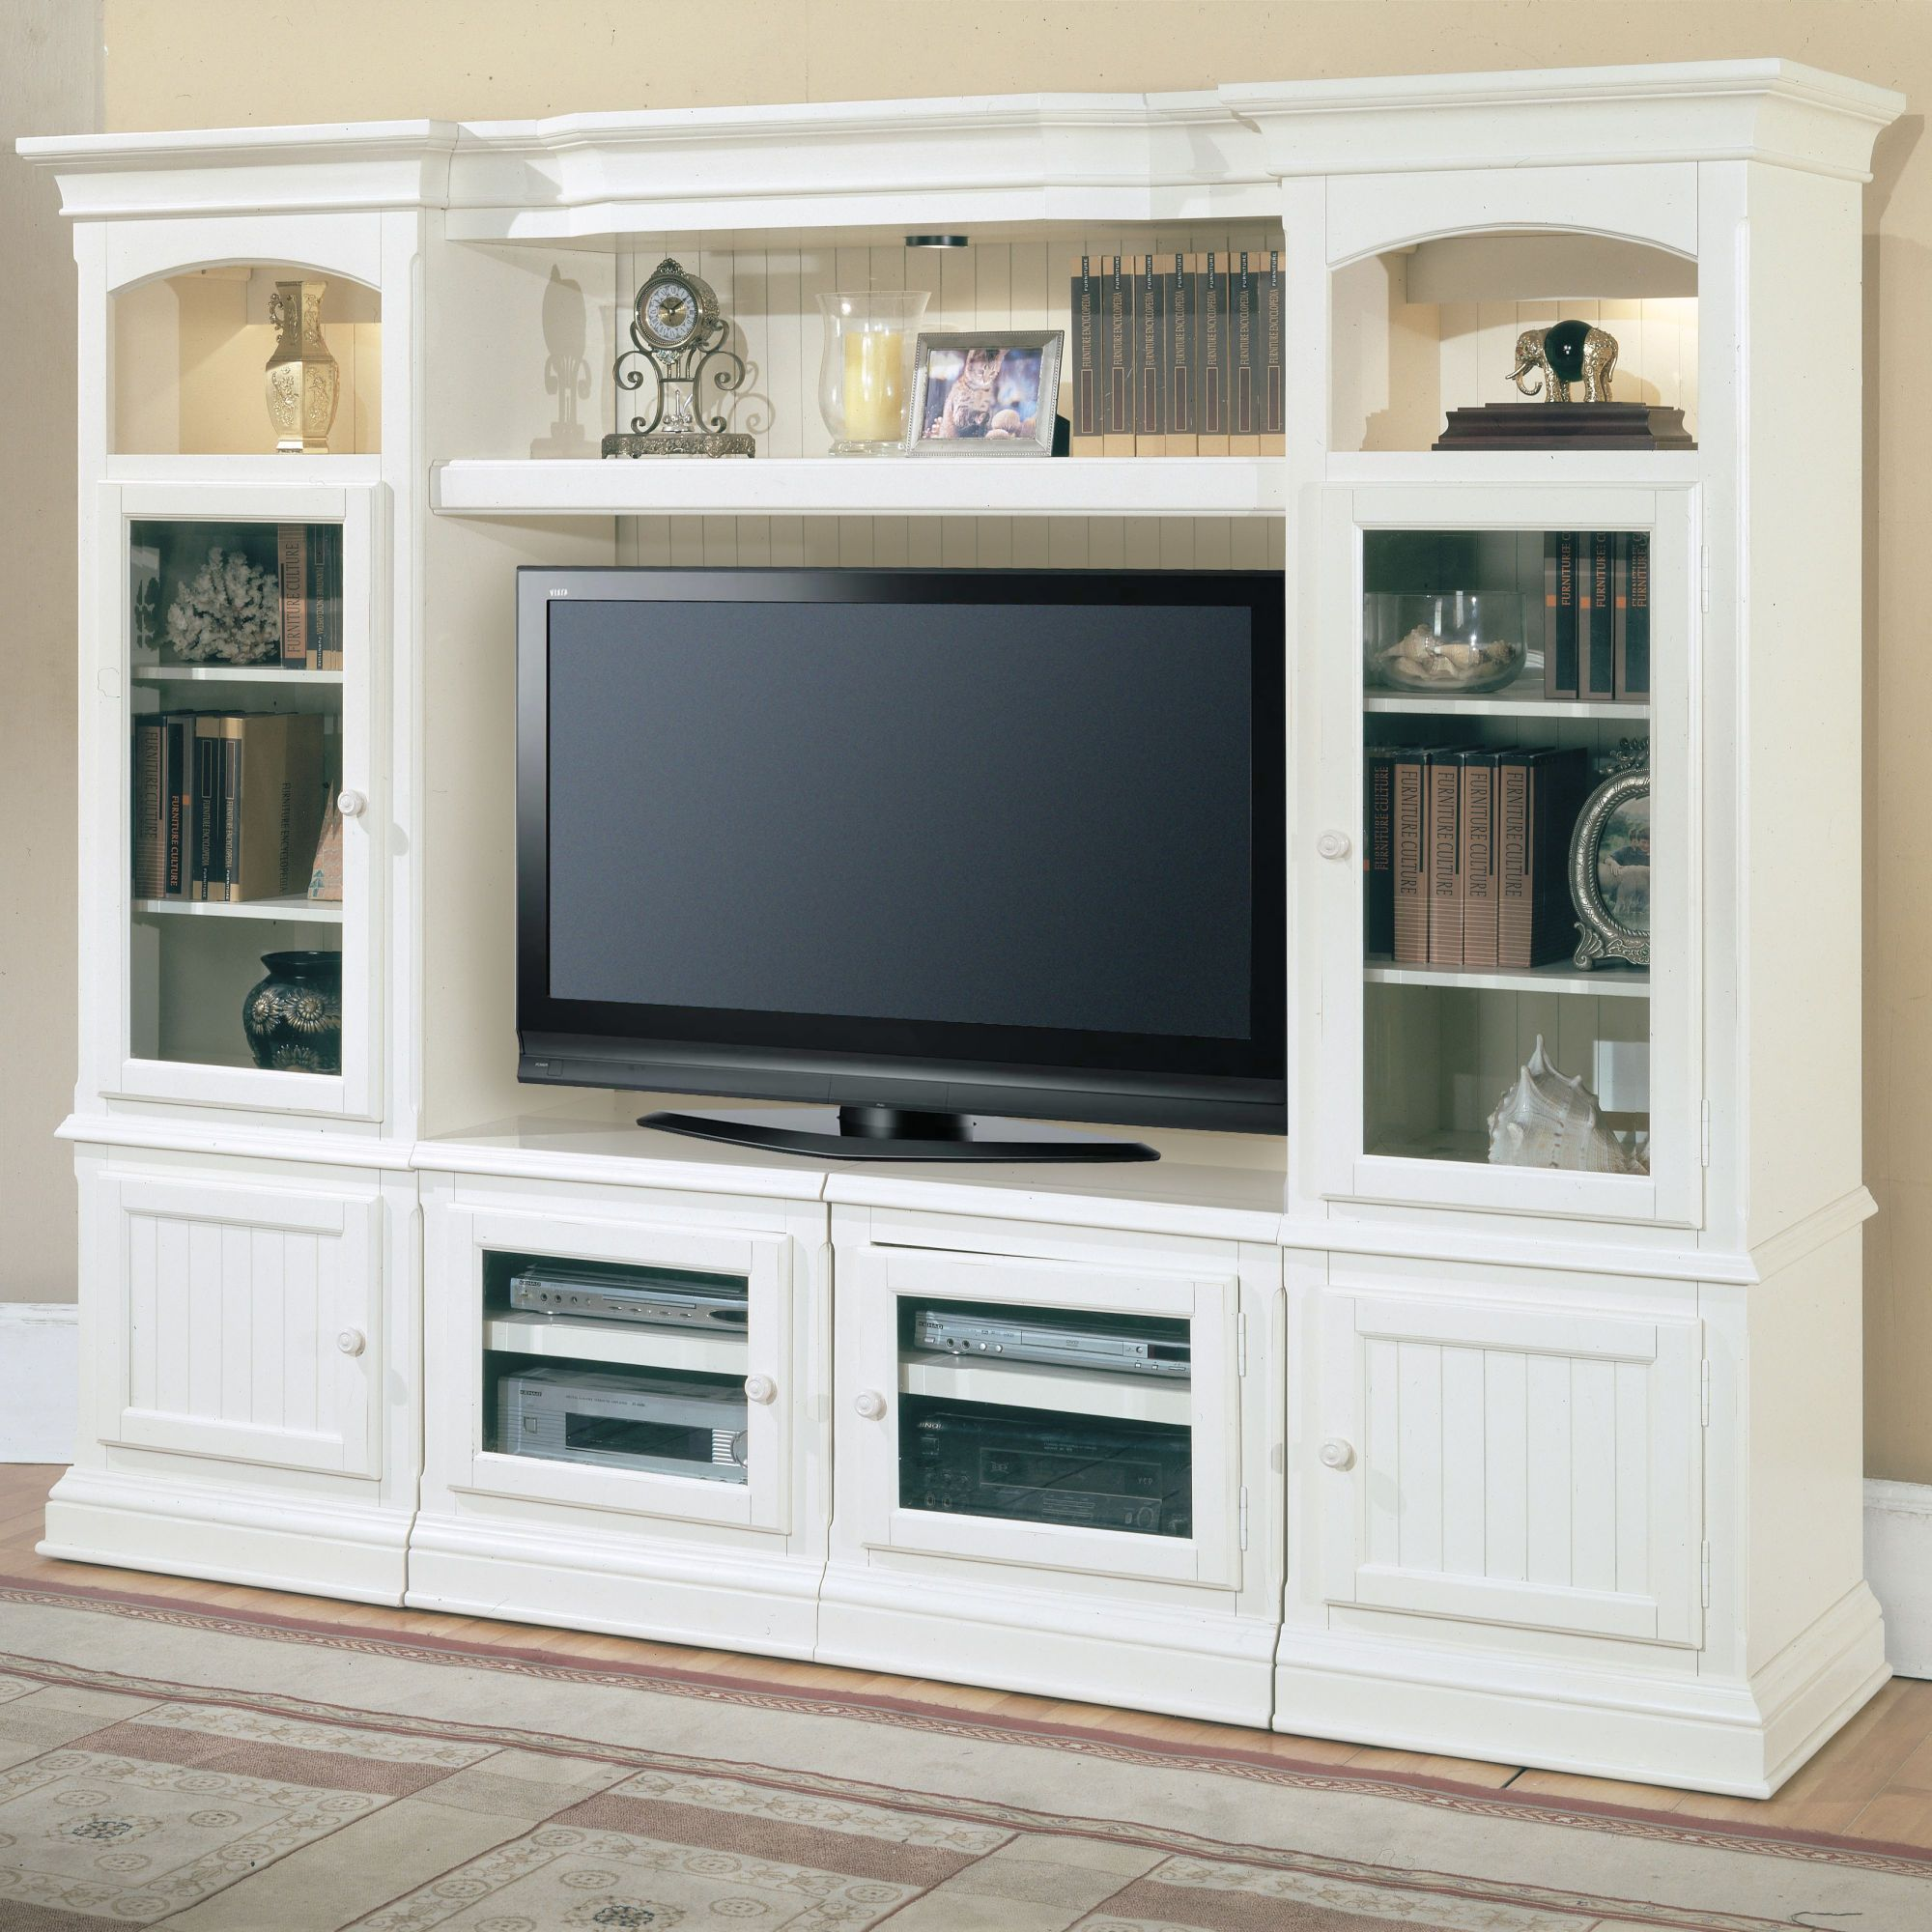 Parker House Hartford 4 Piece Wall Unit Offered By Units Furniture Browse Our Great Selection Of